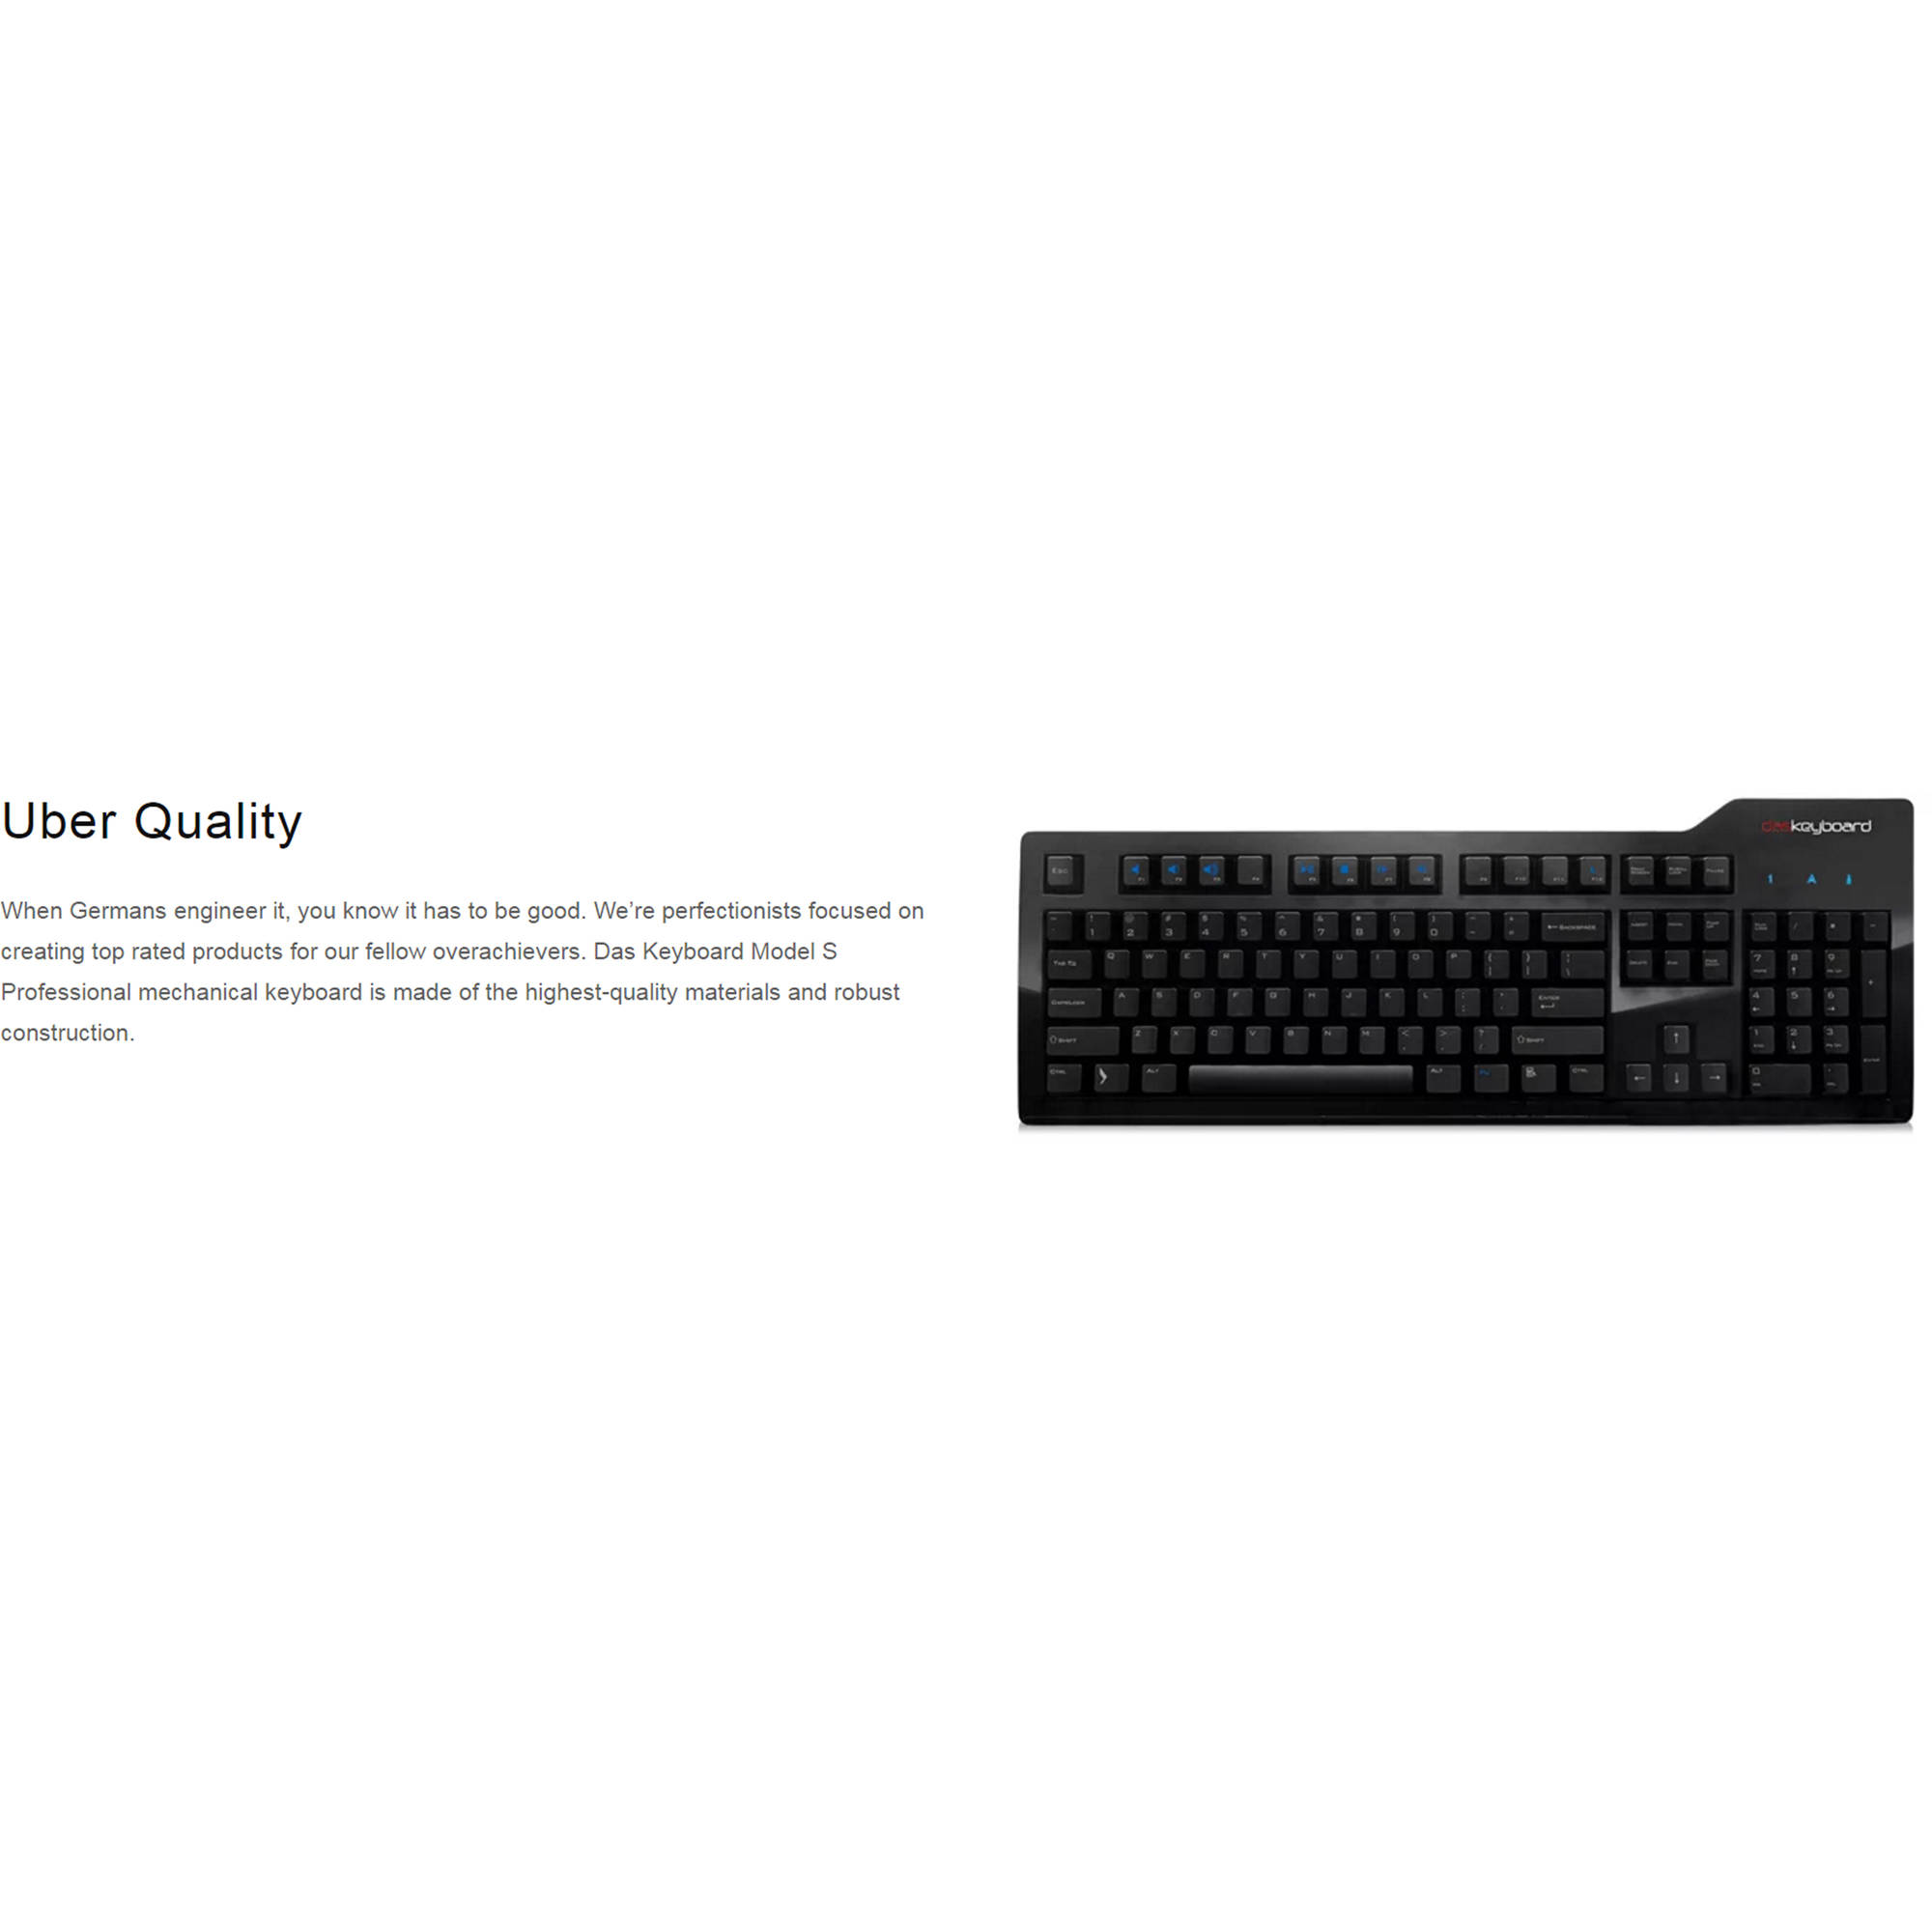 Das Keyboard Model S Professional Mechanical Keyboard (Cherry MX Brown  Switches)